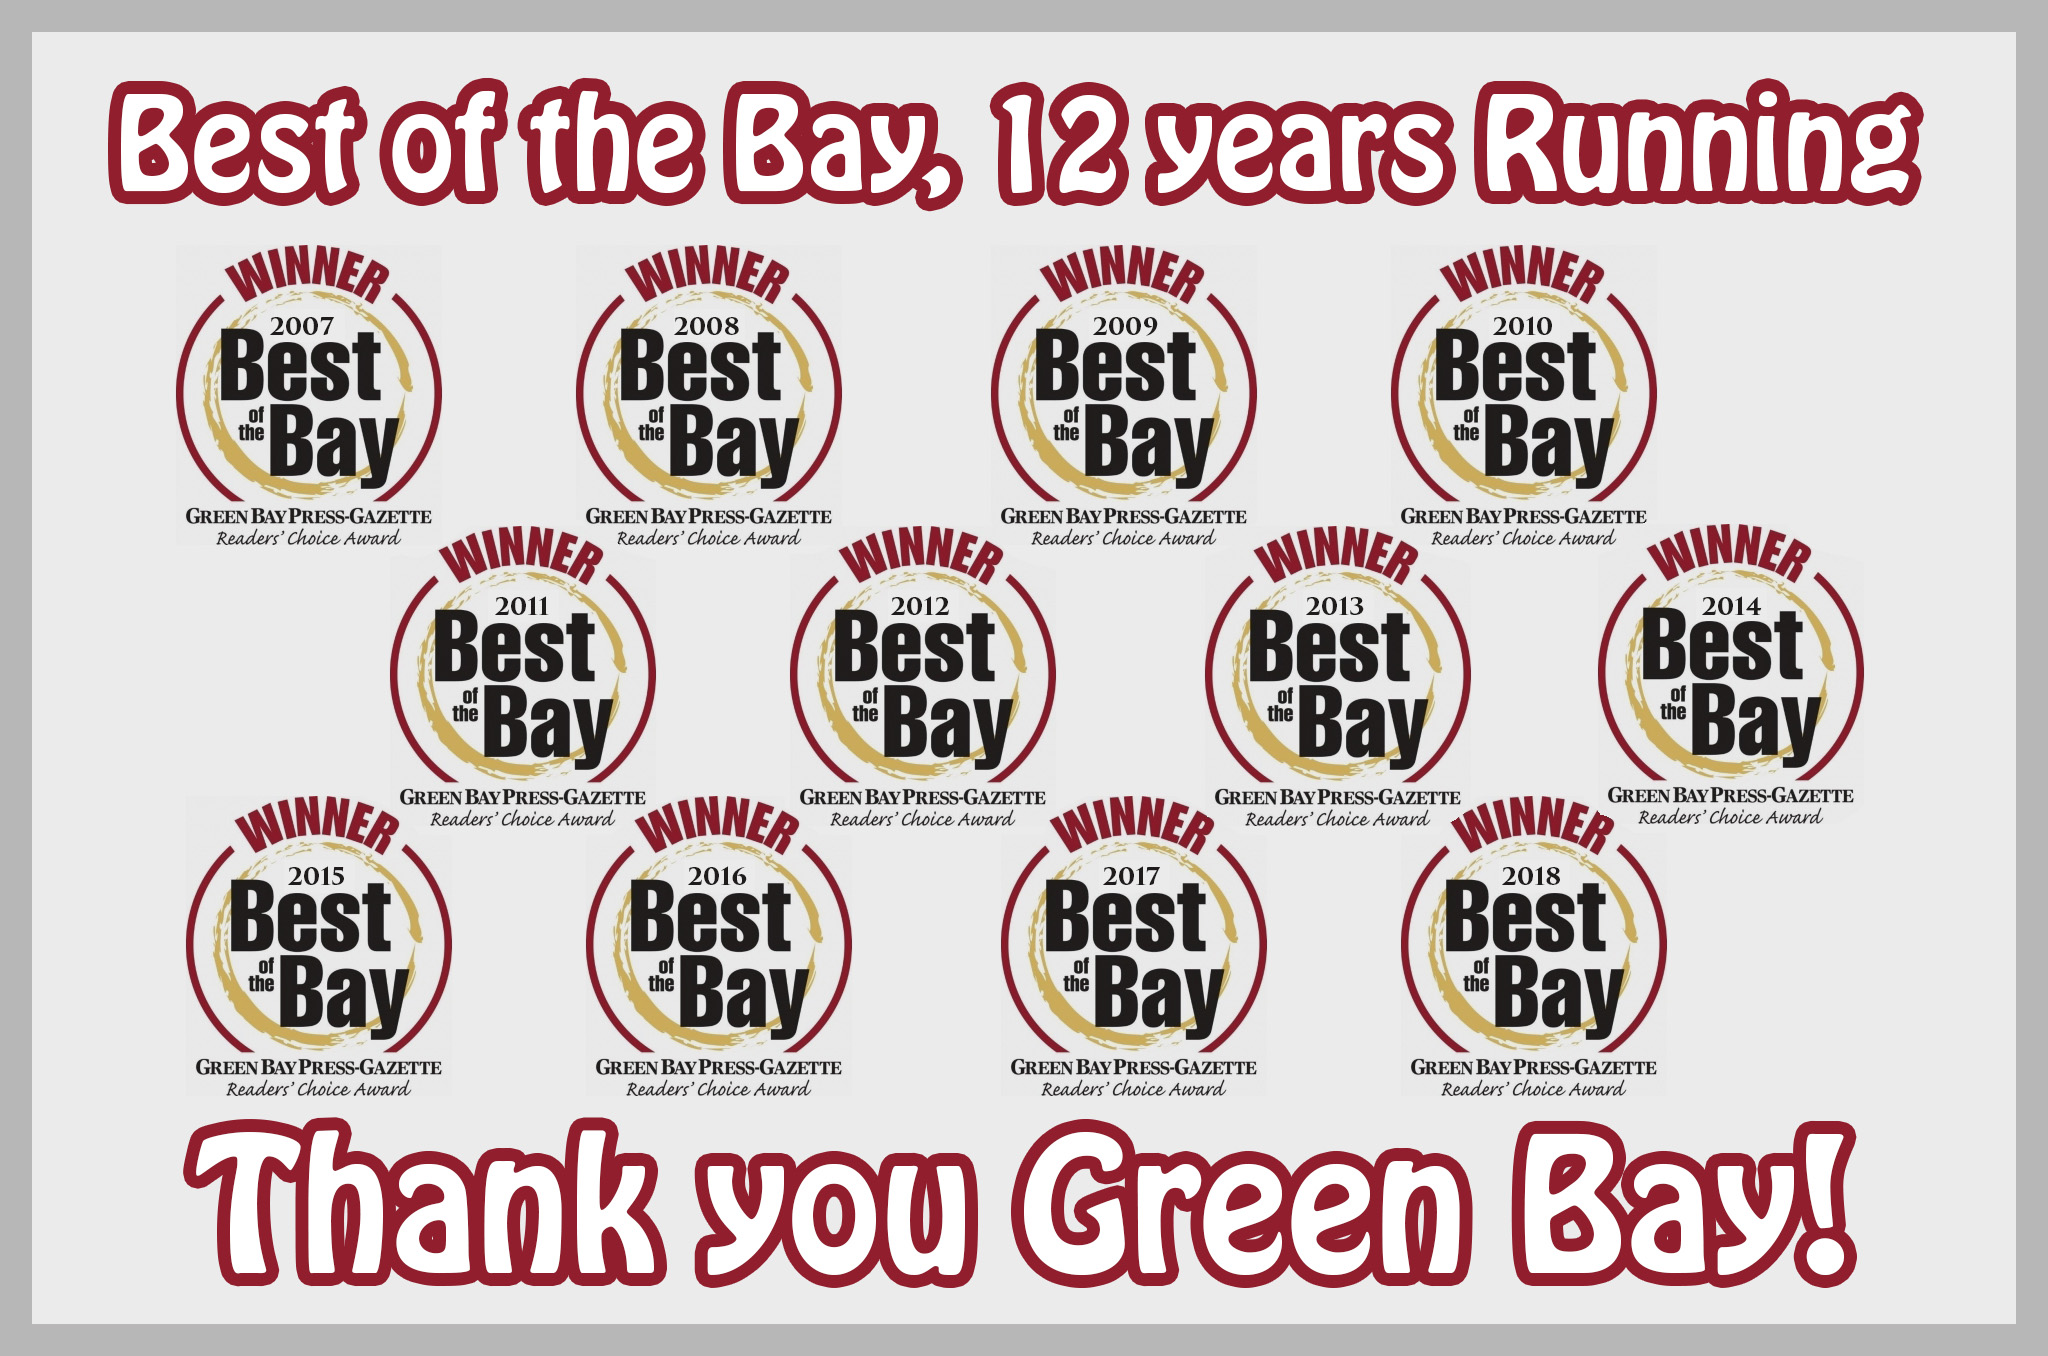 Award Winning - Best of the Bay, 10 years running